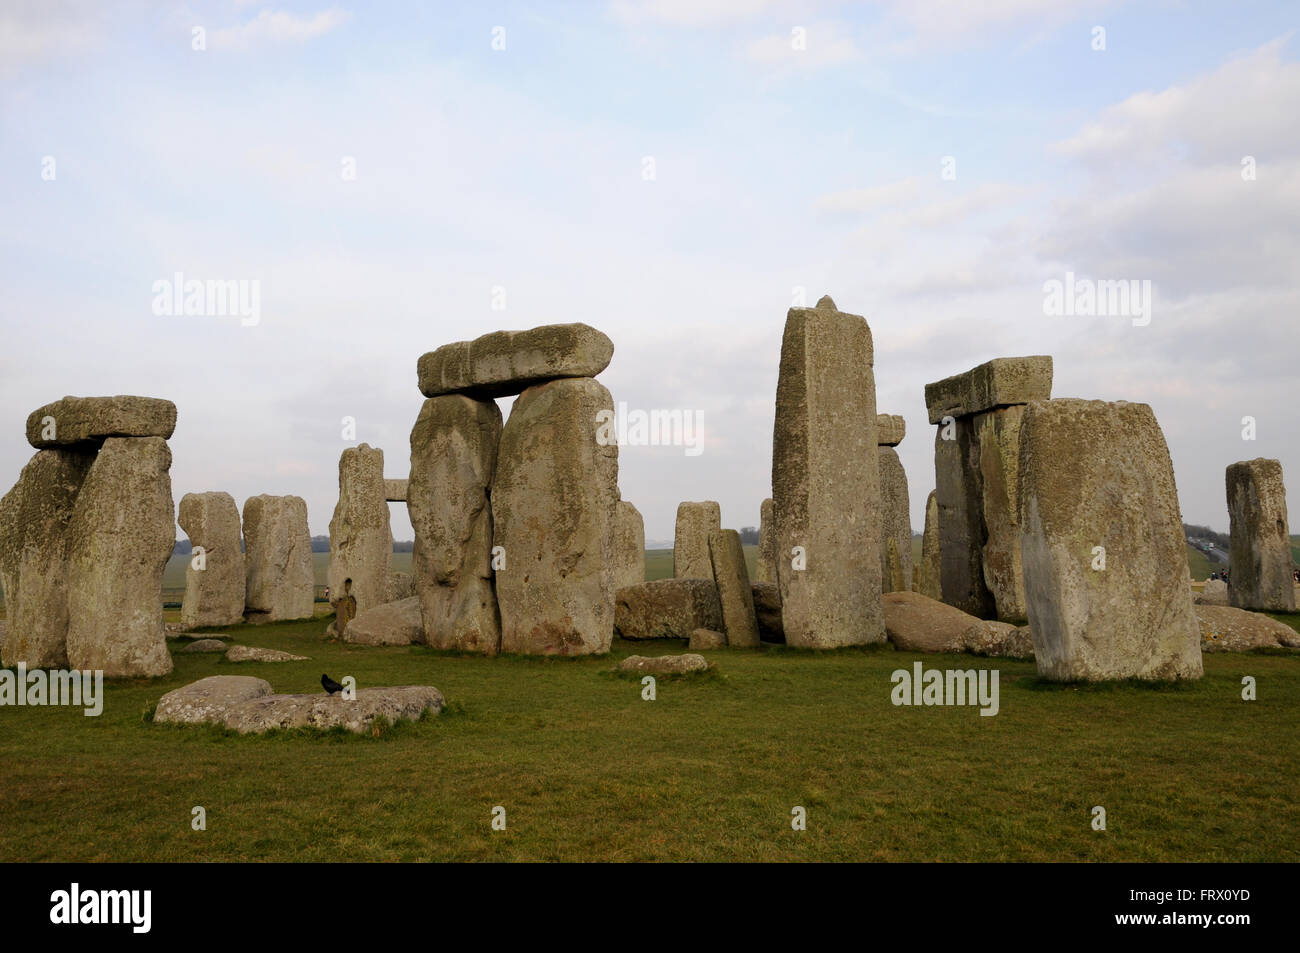 The standing stones at Stonehenge, an Iconic UNESCO World Heritage site in the English County of Wiltshire no far Stock Photo